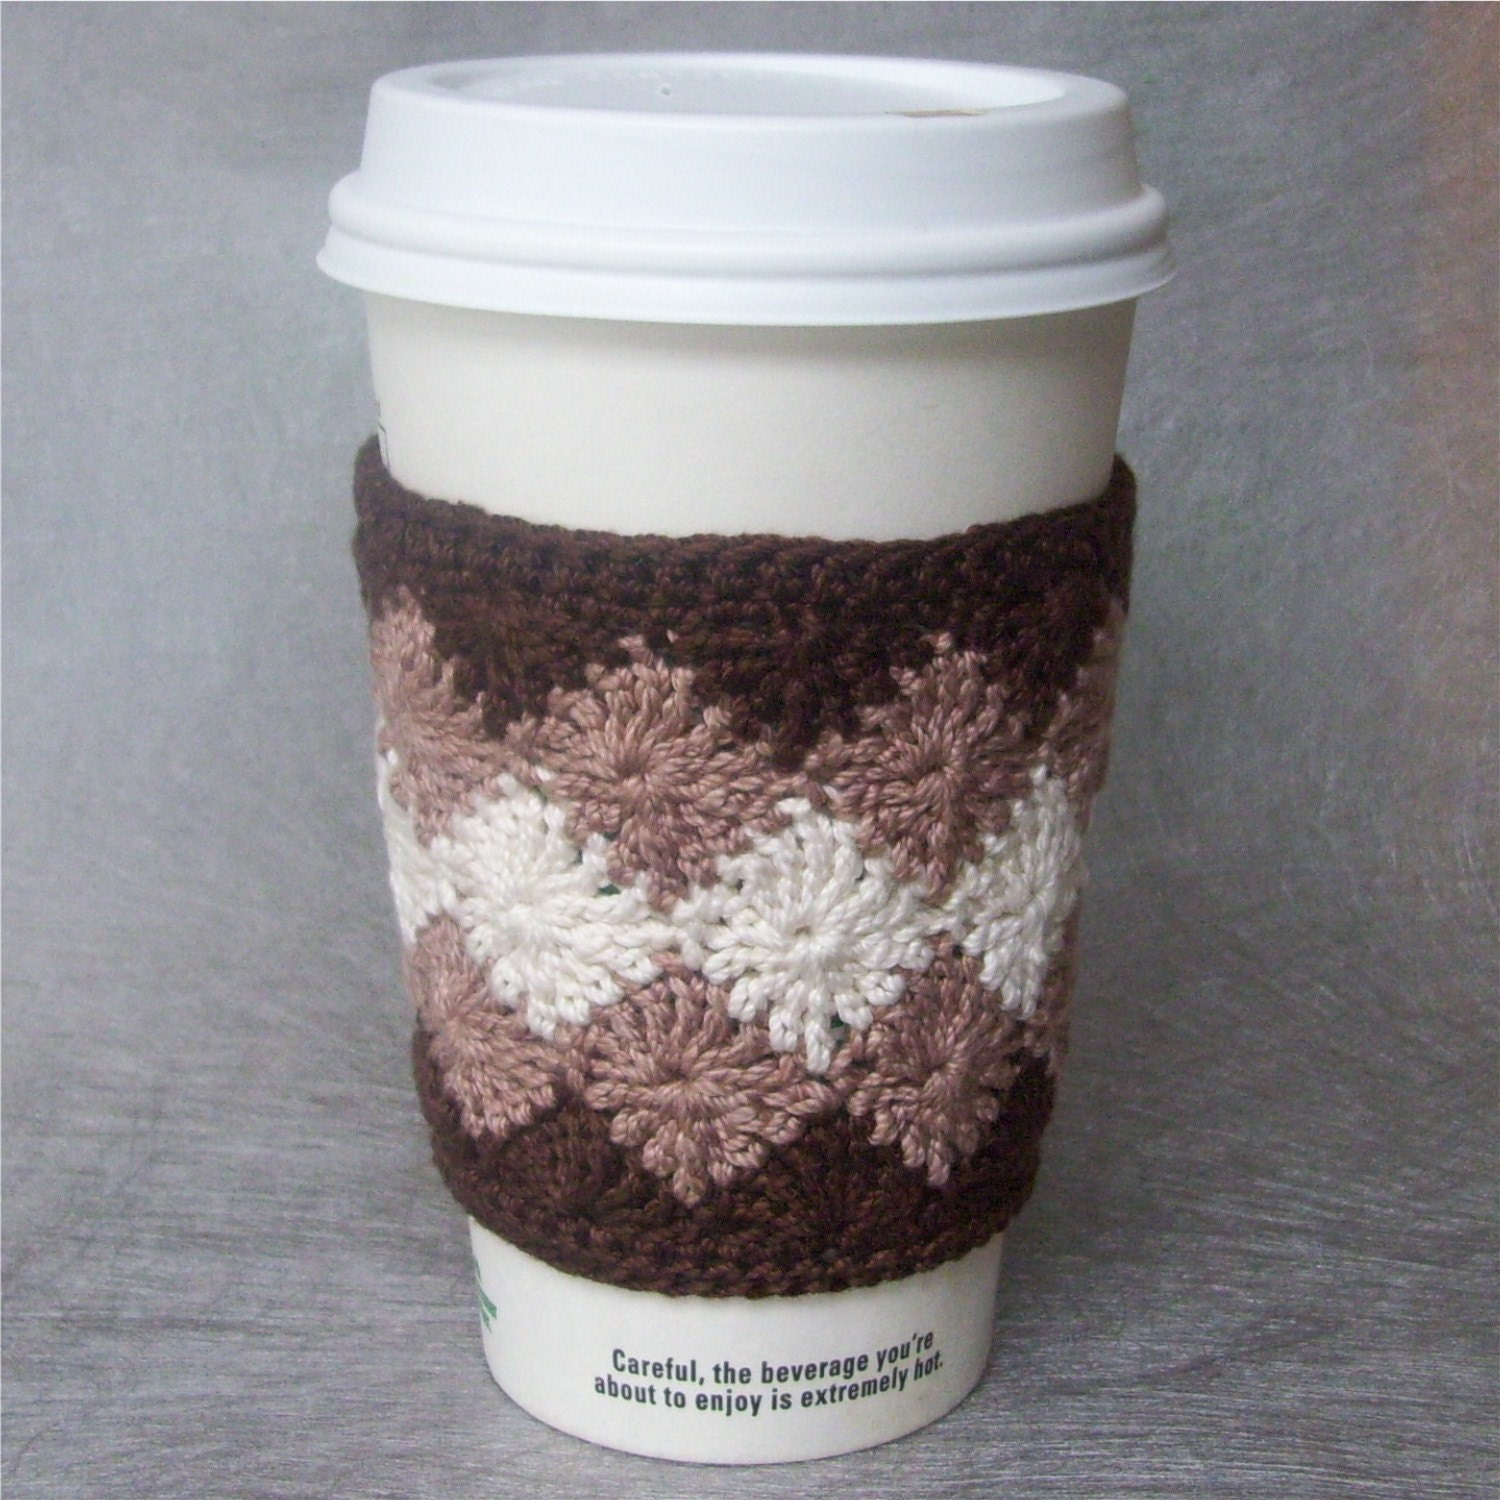 Crocheted Coffee Cozy in Brown and Tan Cotton FREE by CrochetDad